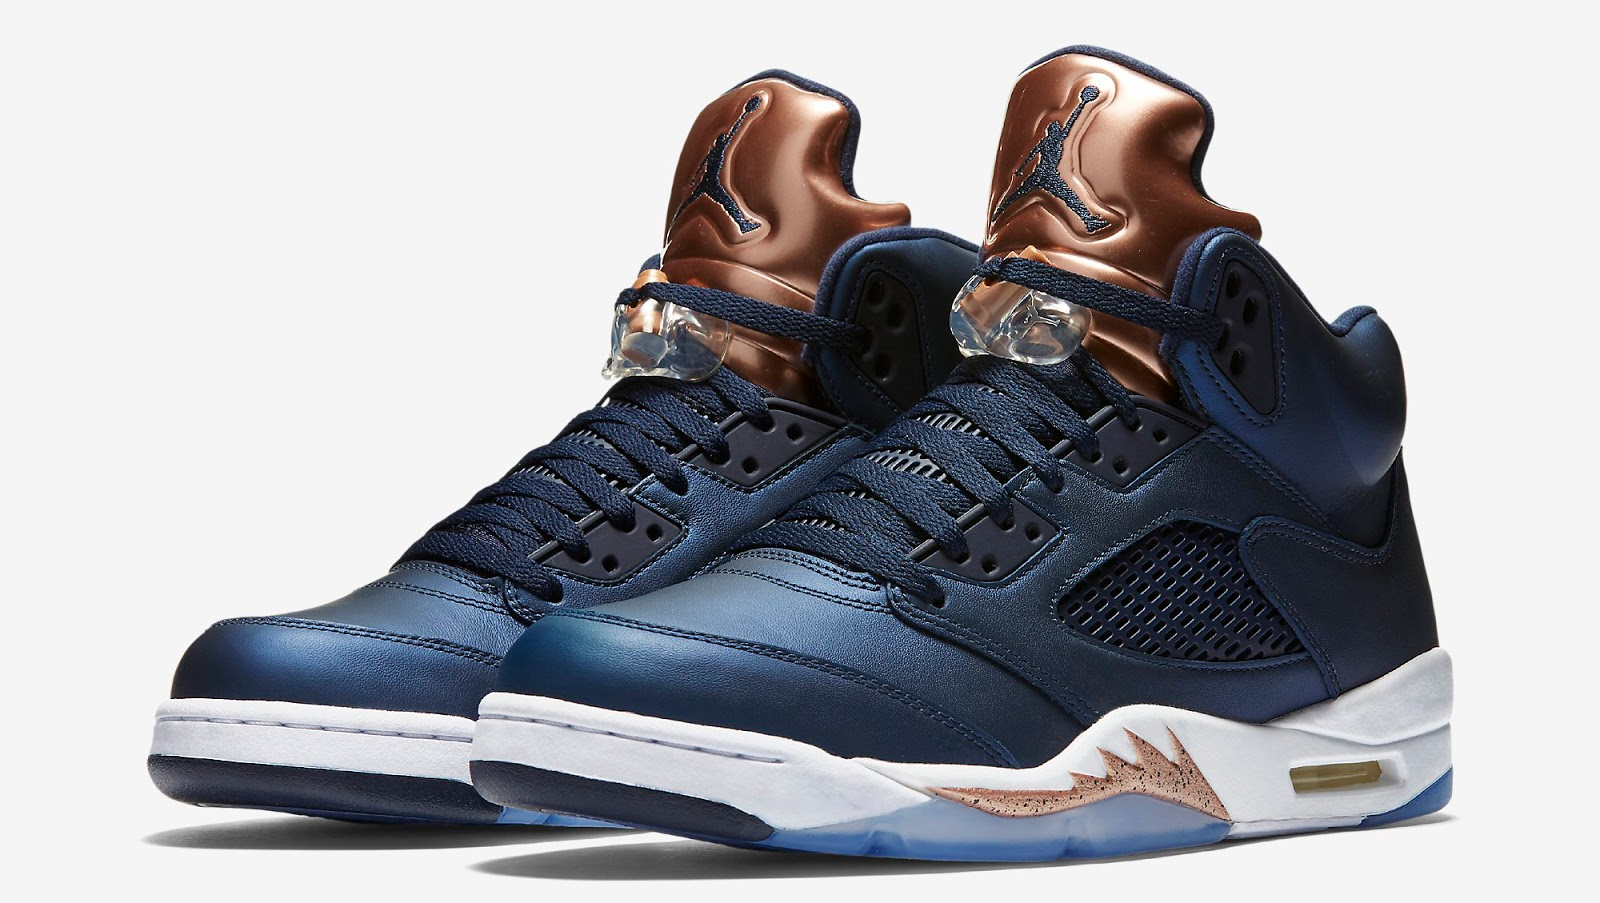 f7d076ec99dc0f Air Jordan 5 Retro Obsidian Metallic Red Bronze-Bright Grape-White Release  Reminder